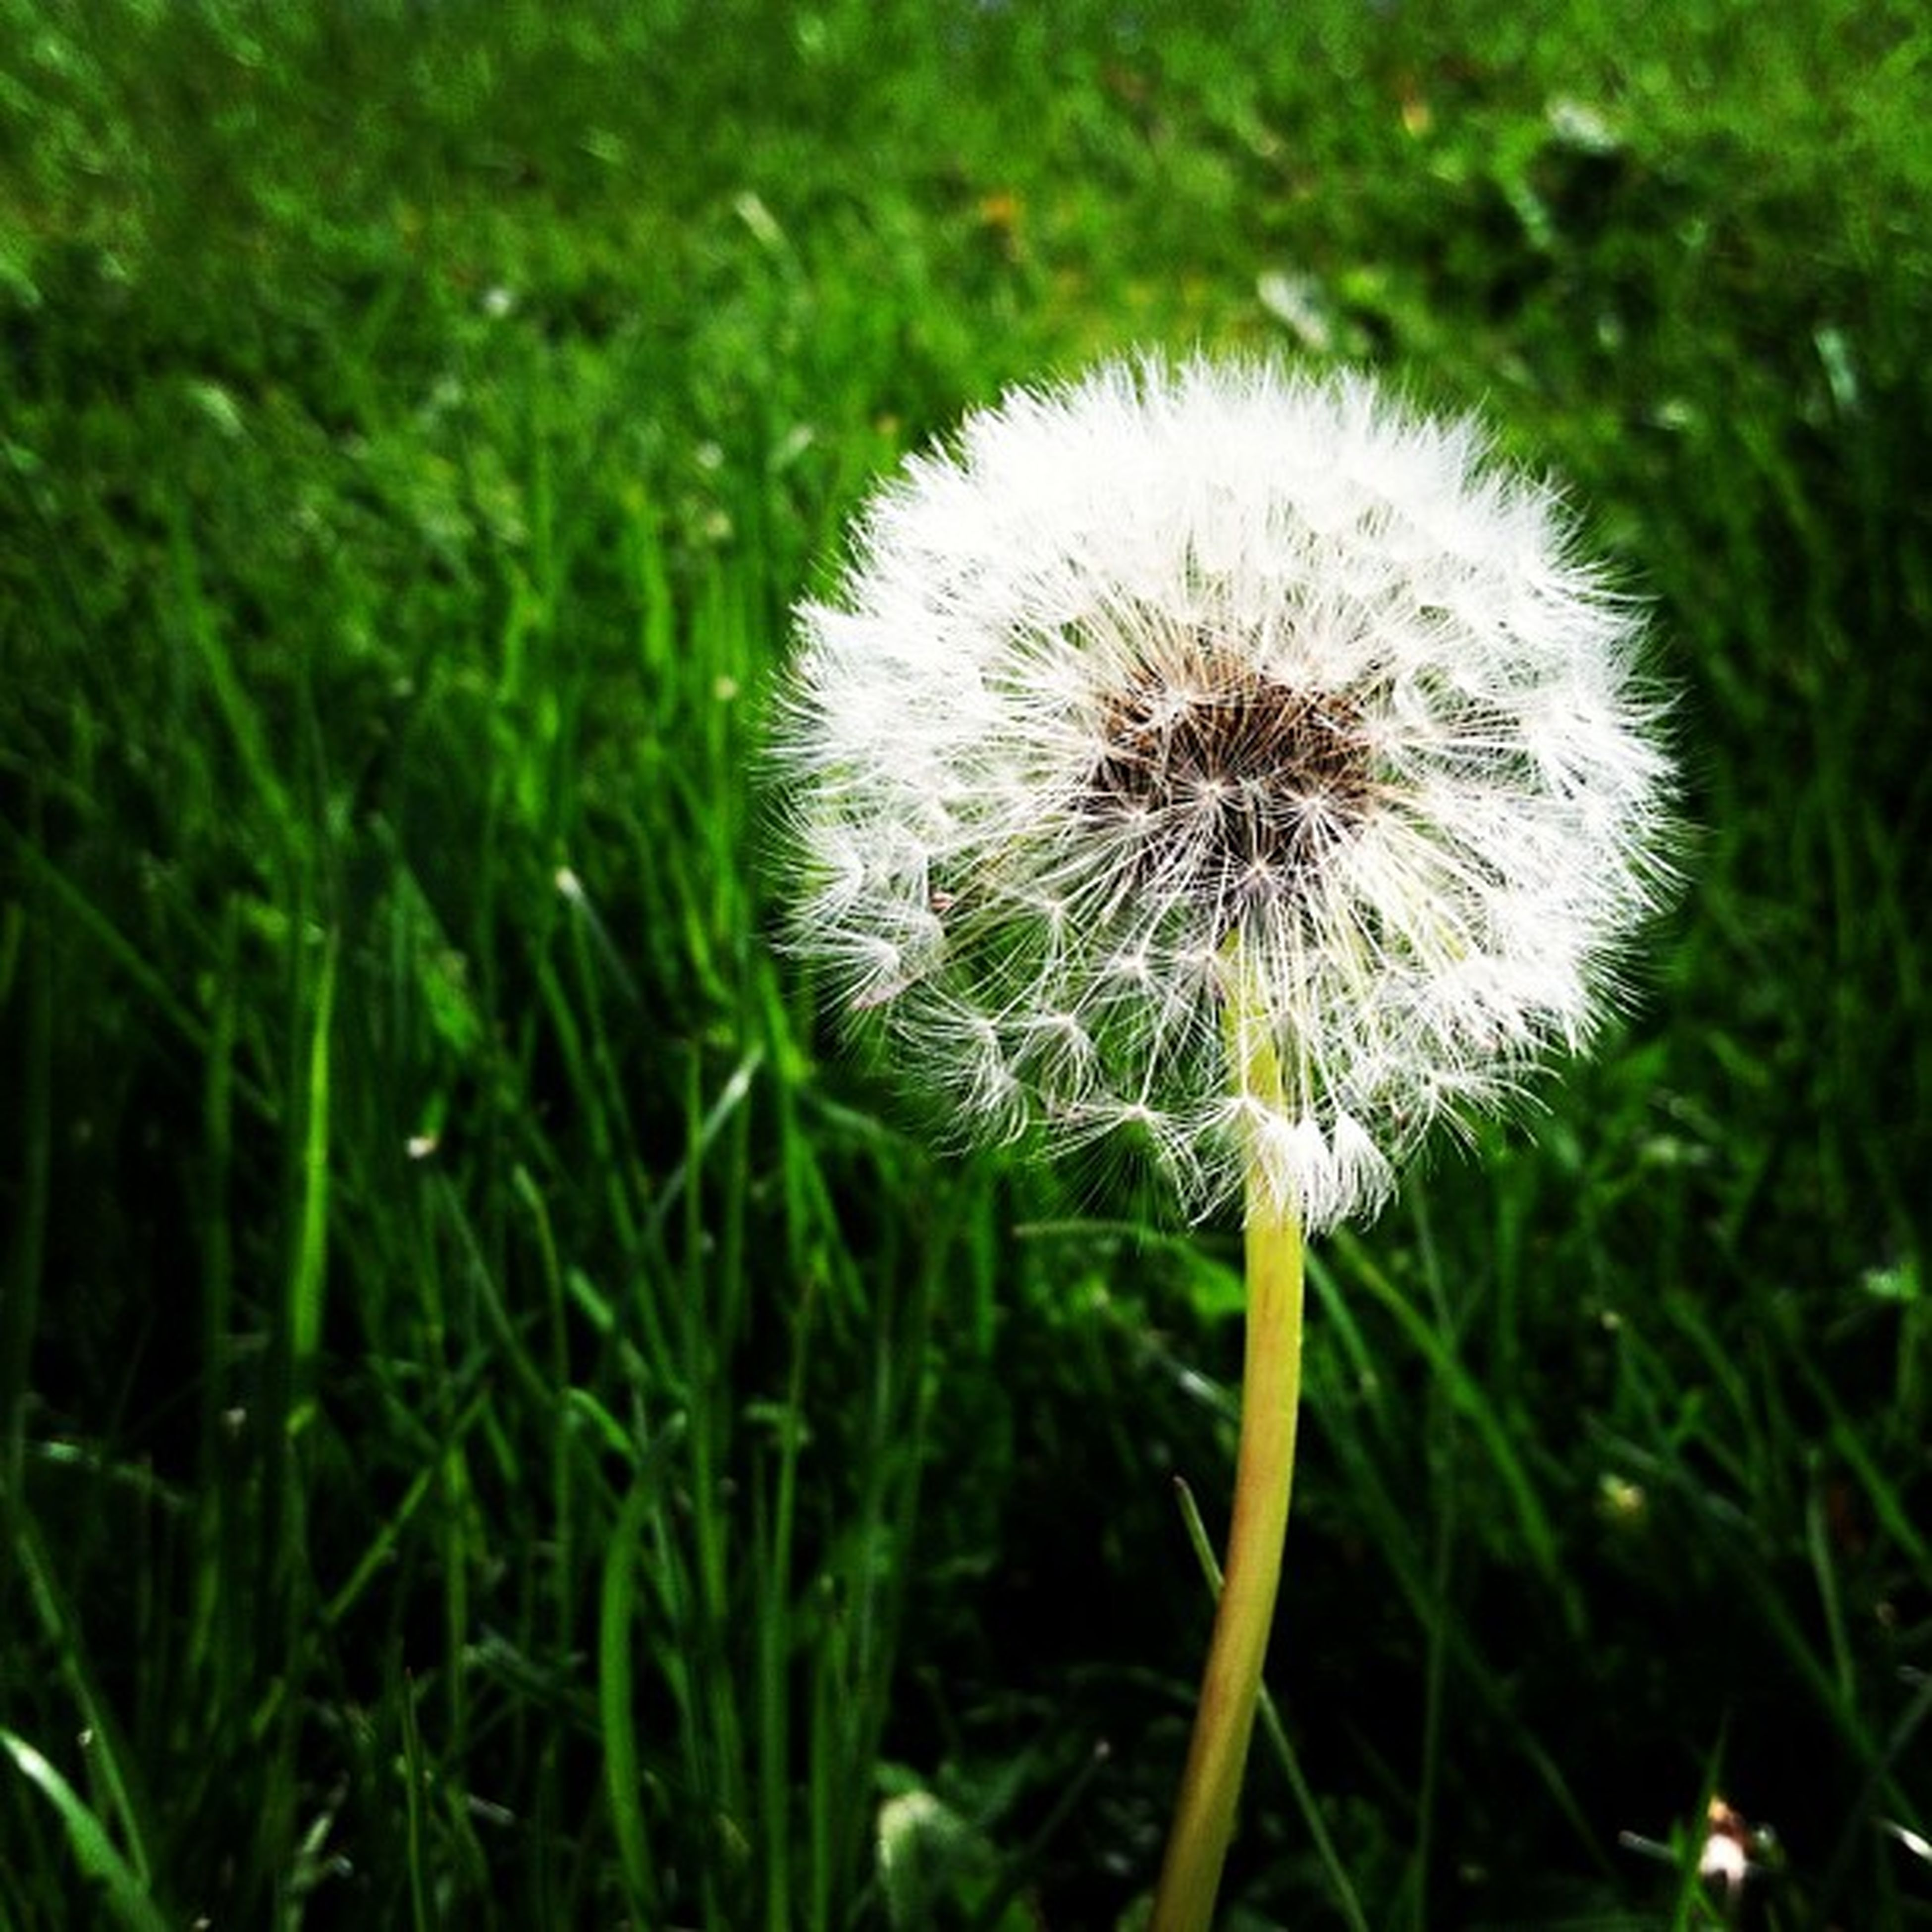 dandelion, flower, fragility, growth, freshness, flower head, beauty in nature, nature, close-up, focus on foreground, field, wildflower, stem, single flower, uncultivated, white color, plant, grass, softness, dandelion seed